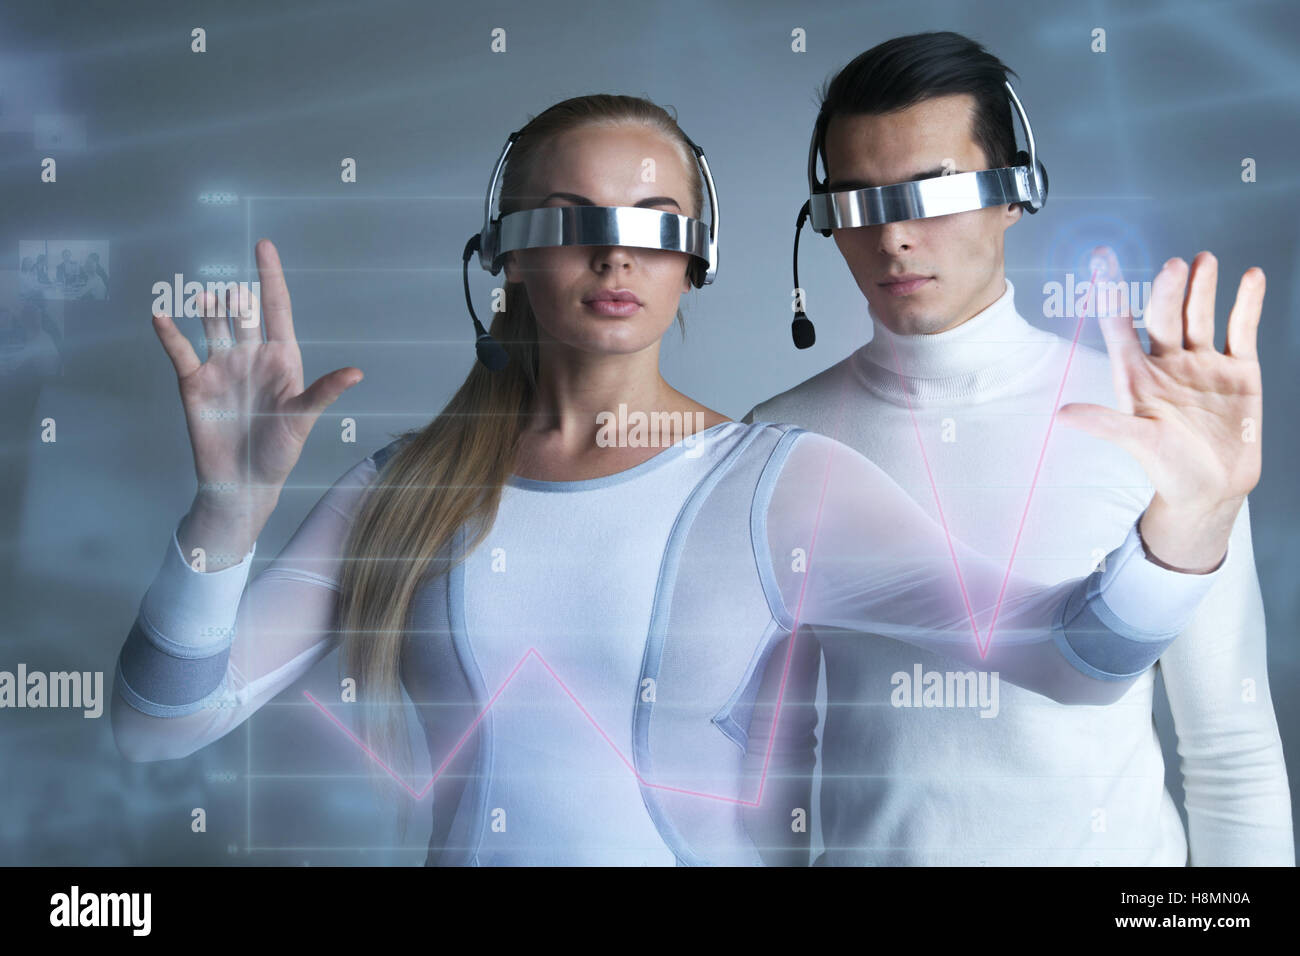 People in vr goggles touching a graph indicating growth on virtual display - Stock Image